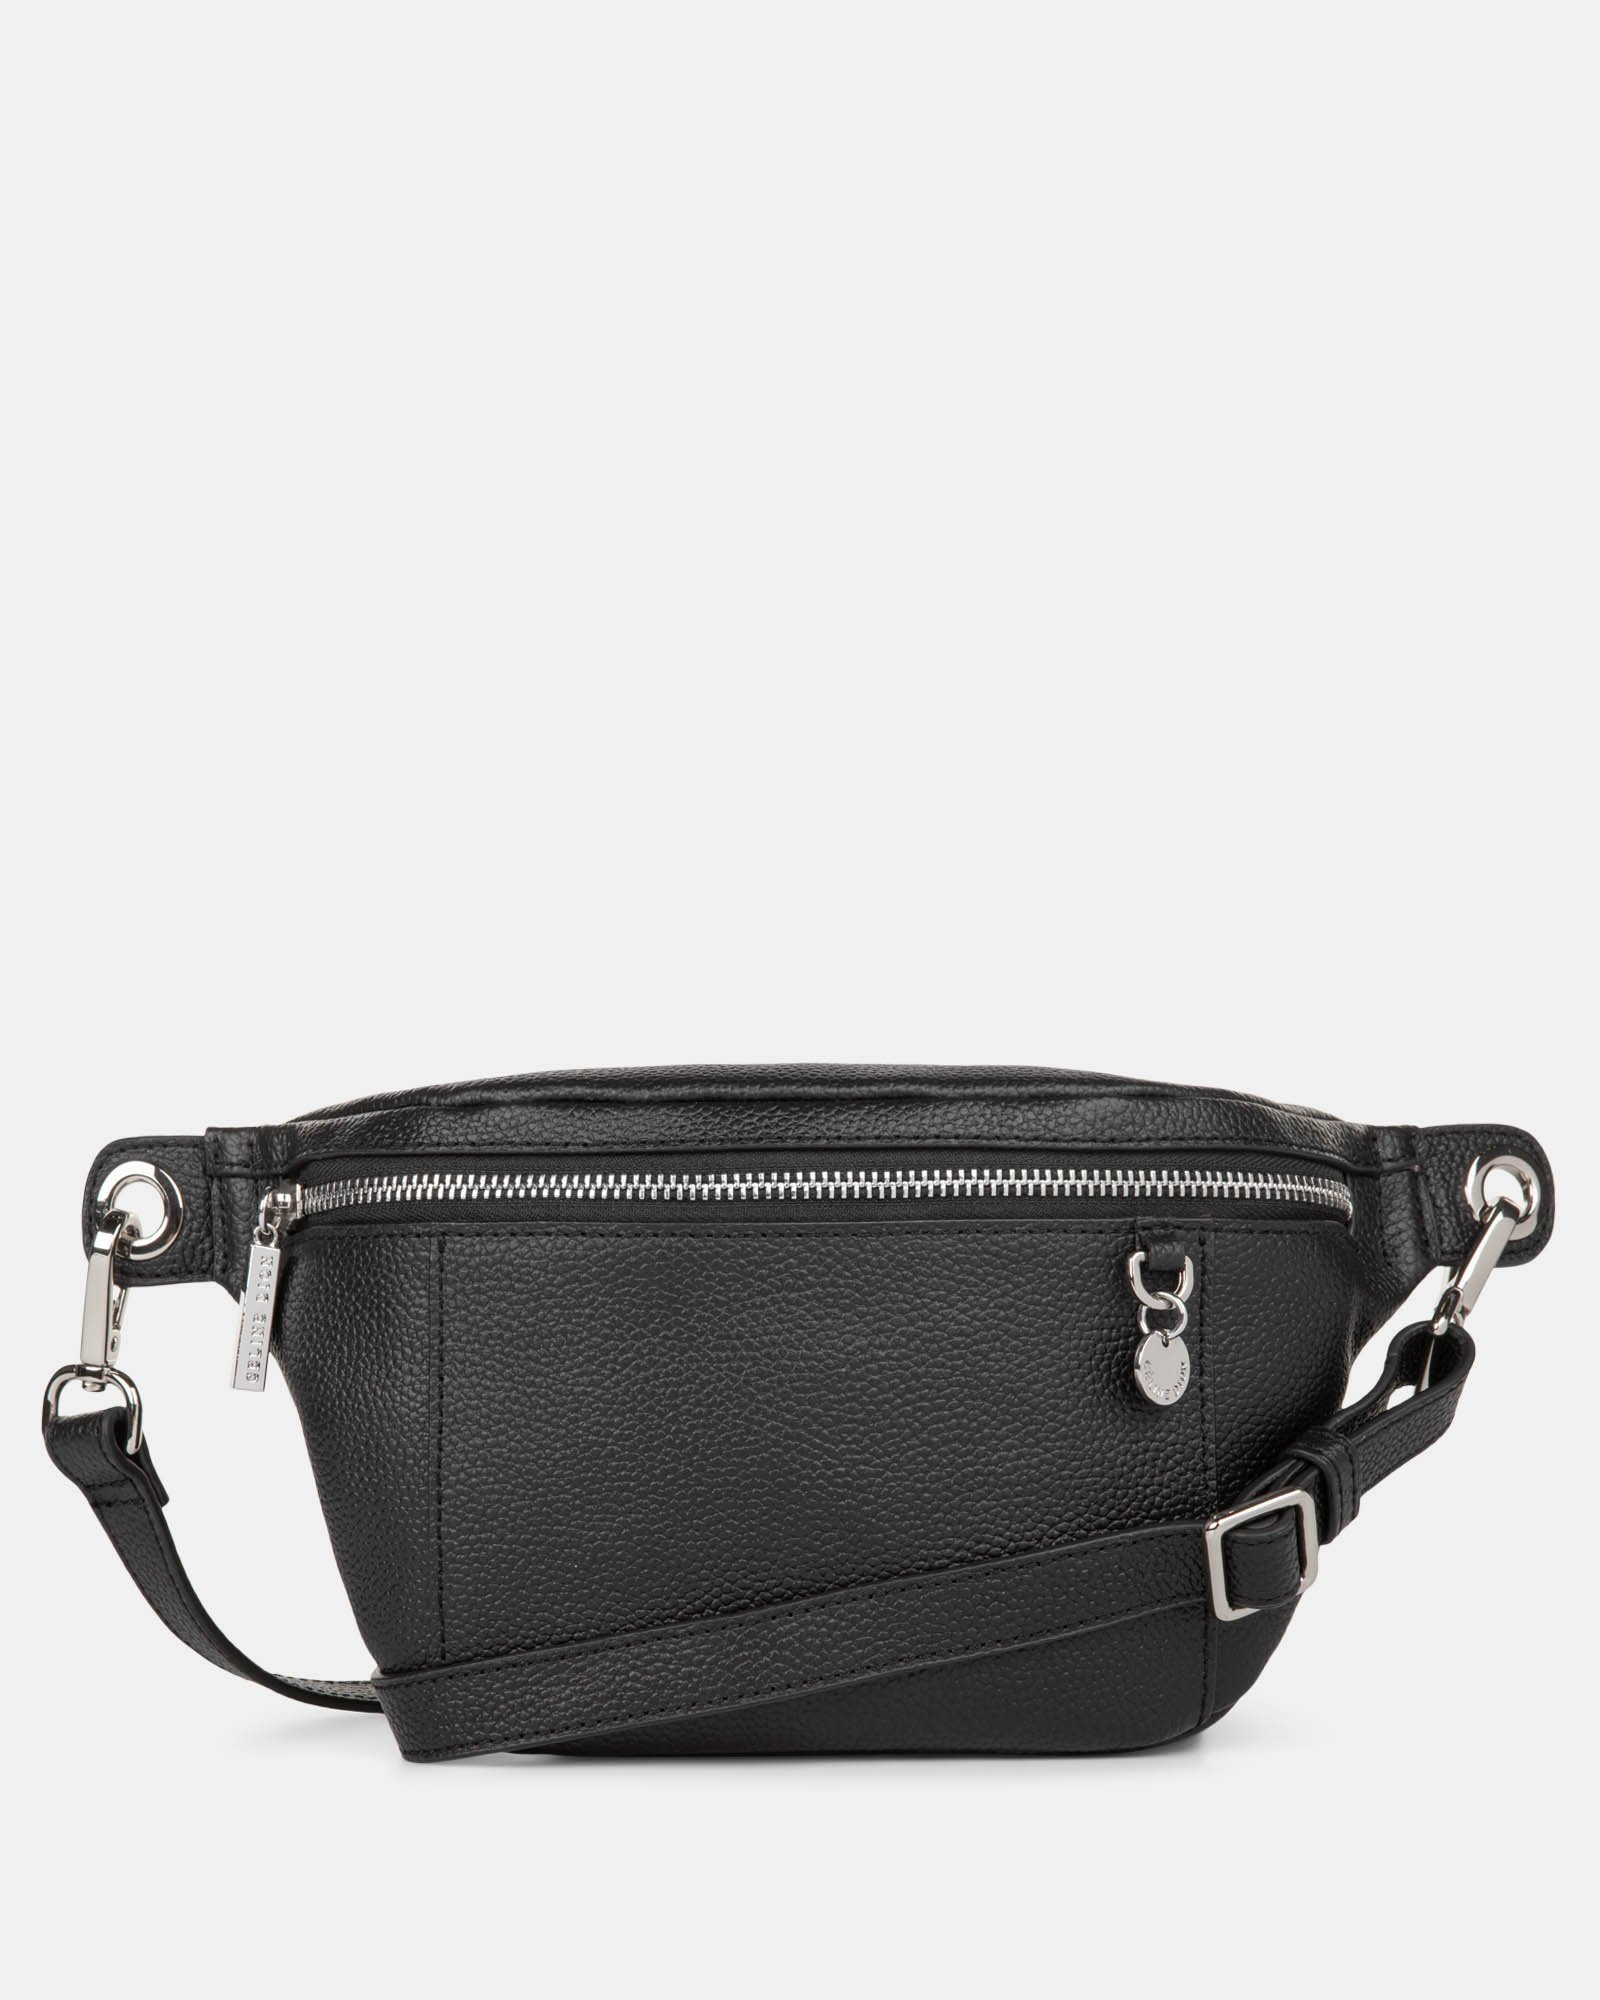 FALSETTO - LEATHER MONEY BELT with RFID protection - BLACK - Céline Dion - Zoom